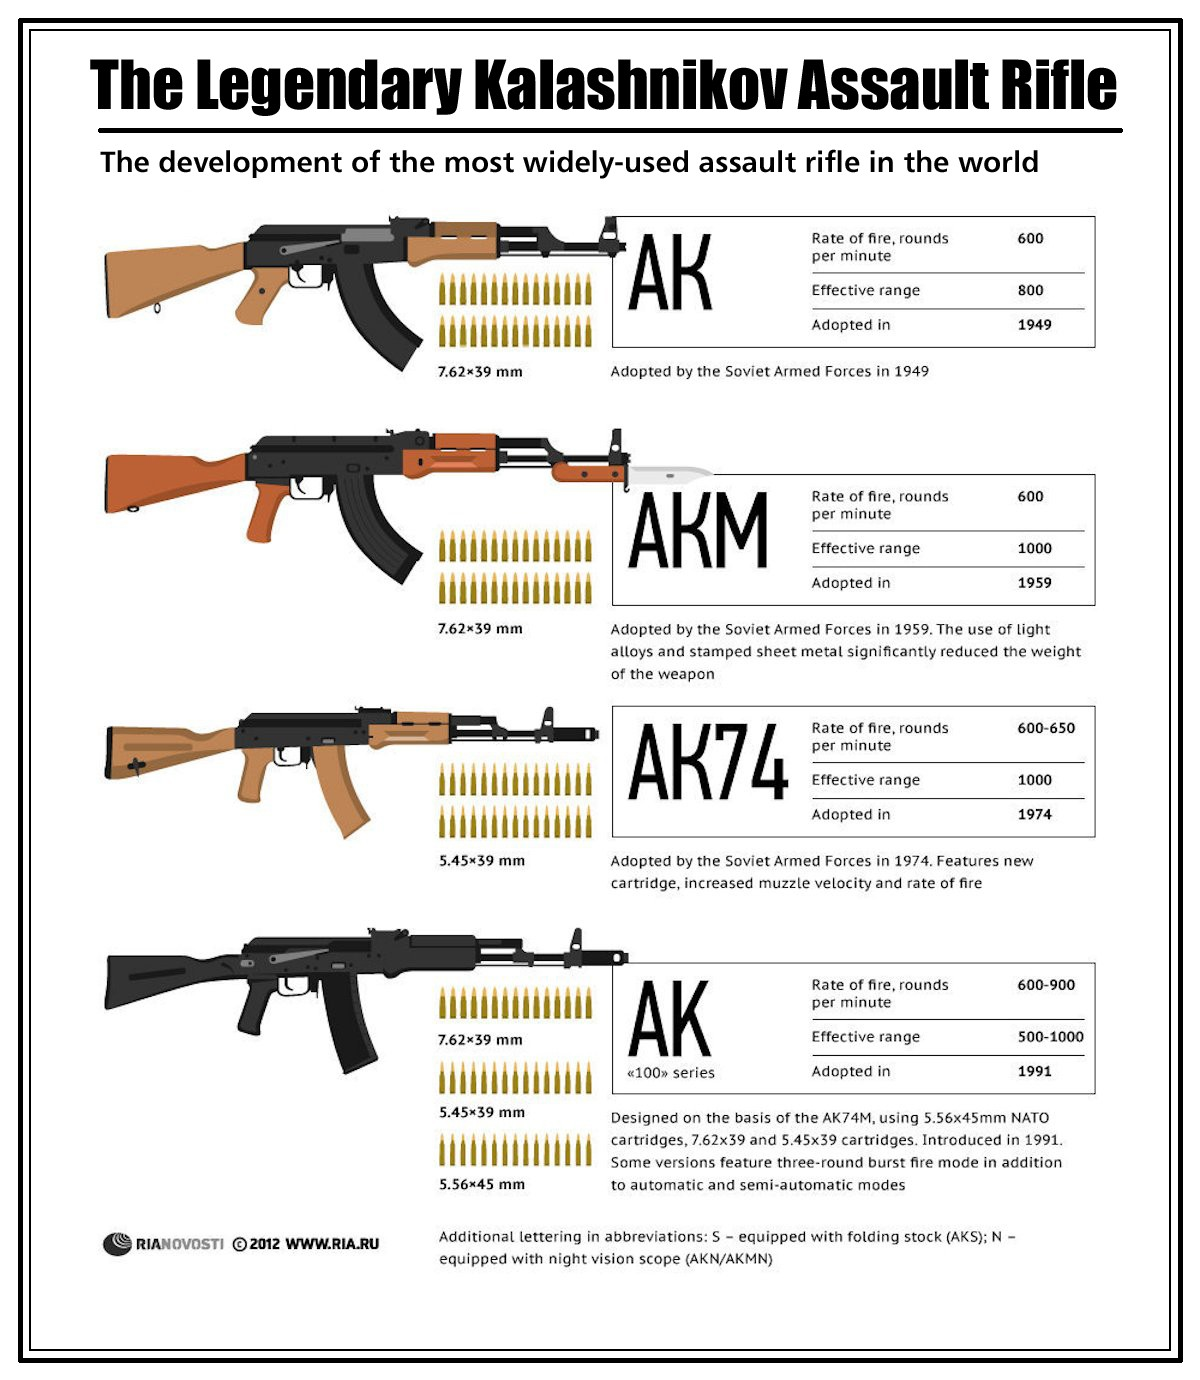 00 RIA-Novosti Infographics. The Legendary Kalashnikov Assault Rifle. 2012